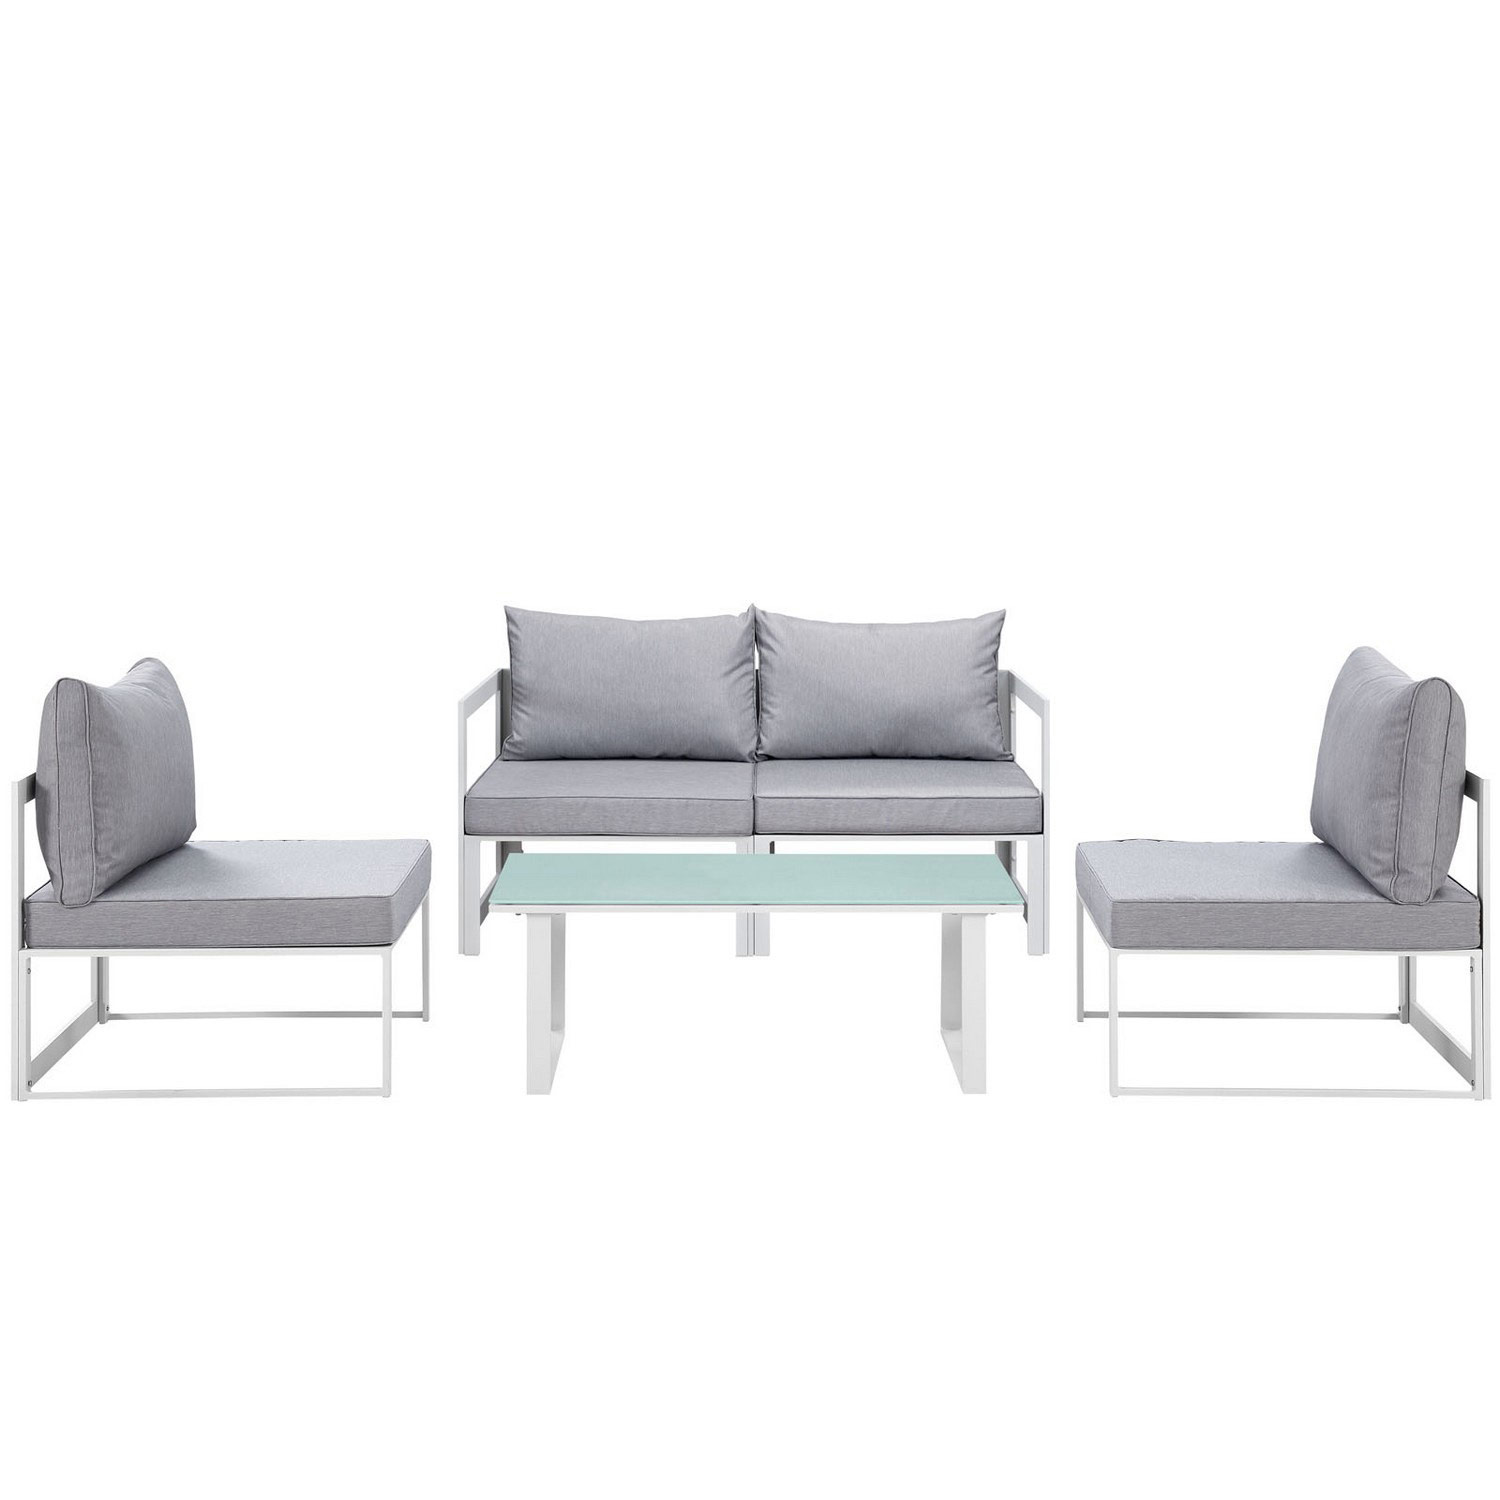 Modway Fortuna 5 Piece Outdoor Patio Sectional Sofa Set - White/Gray